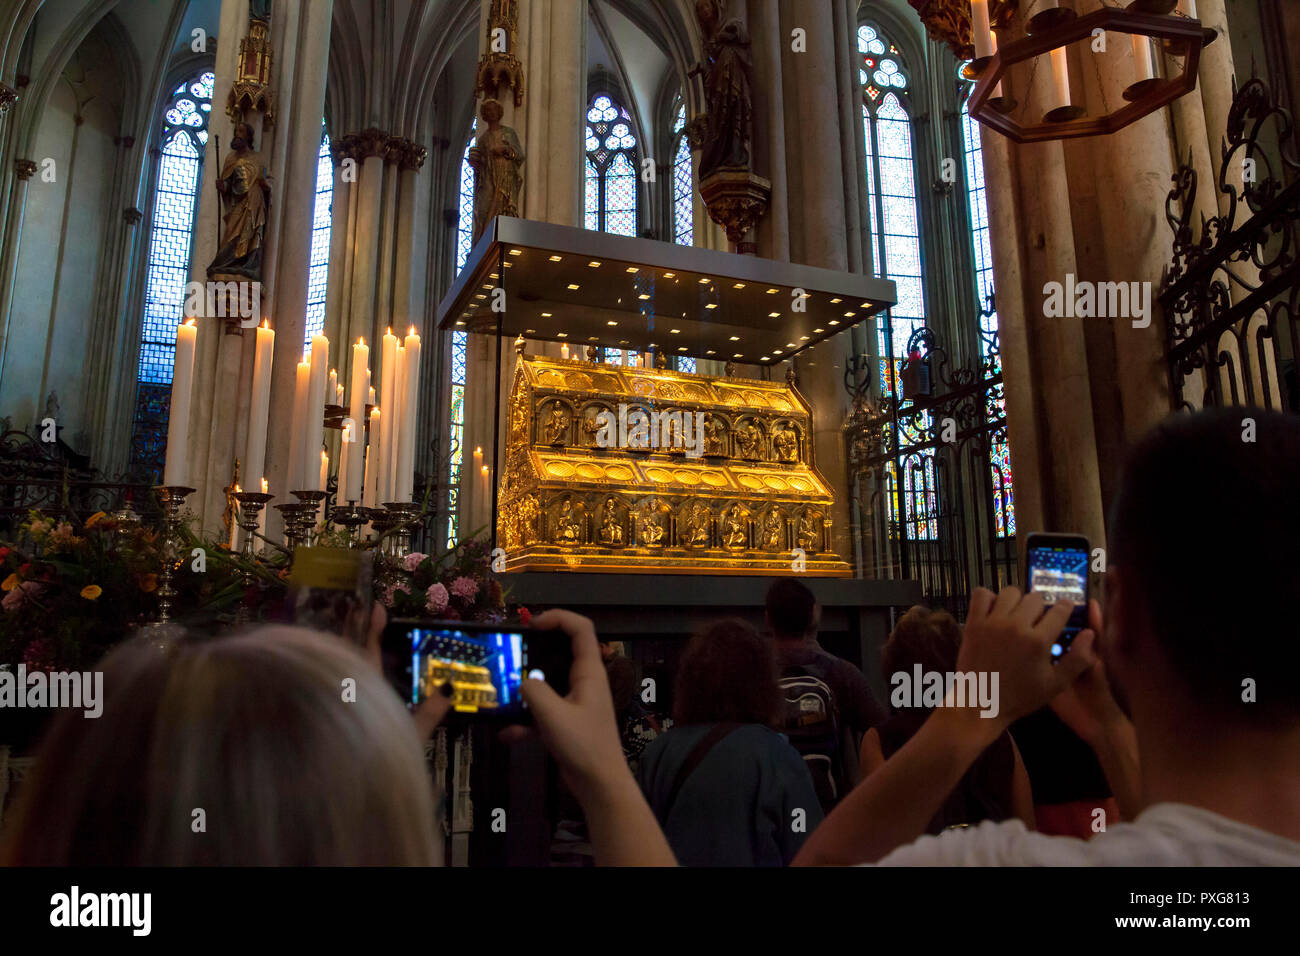 visitors take pictures of the shrine of the Three Magi at the cathedral, Cologne, Germany.  Besucher fotografieren den Dreikoenigsschrein im Dom, Koel - Stock Image